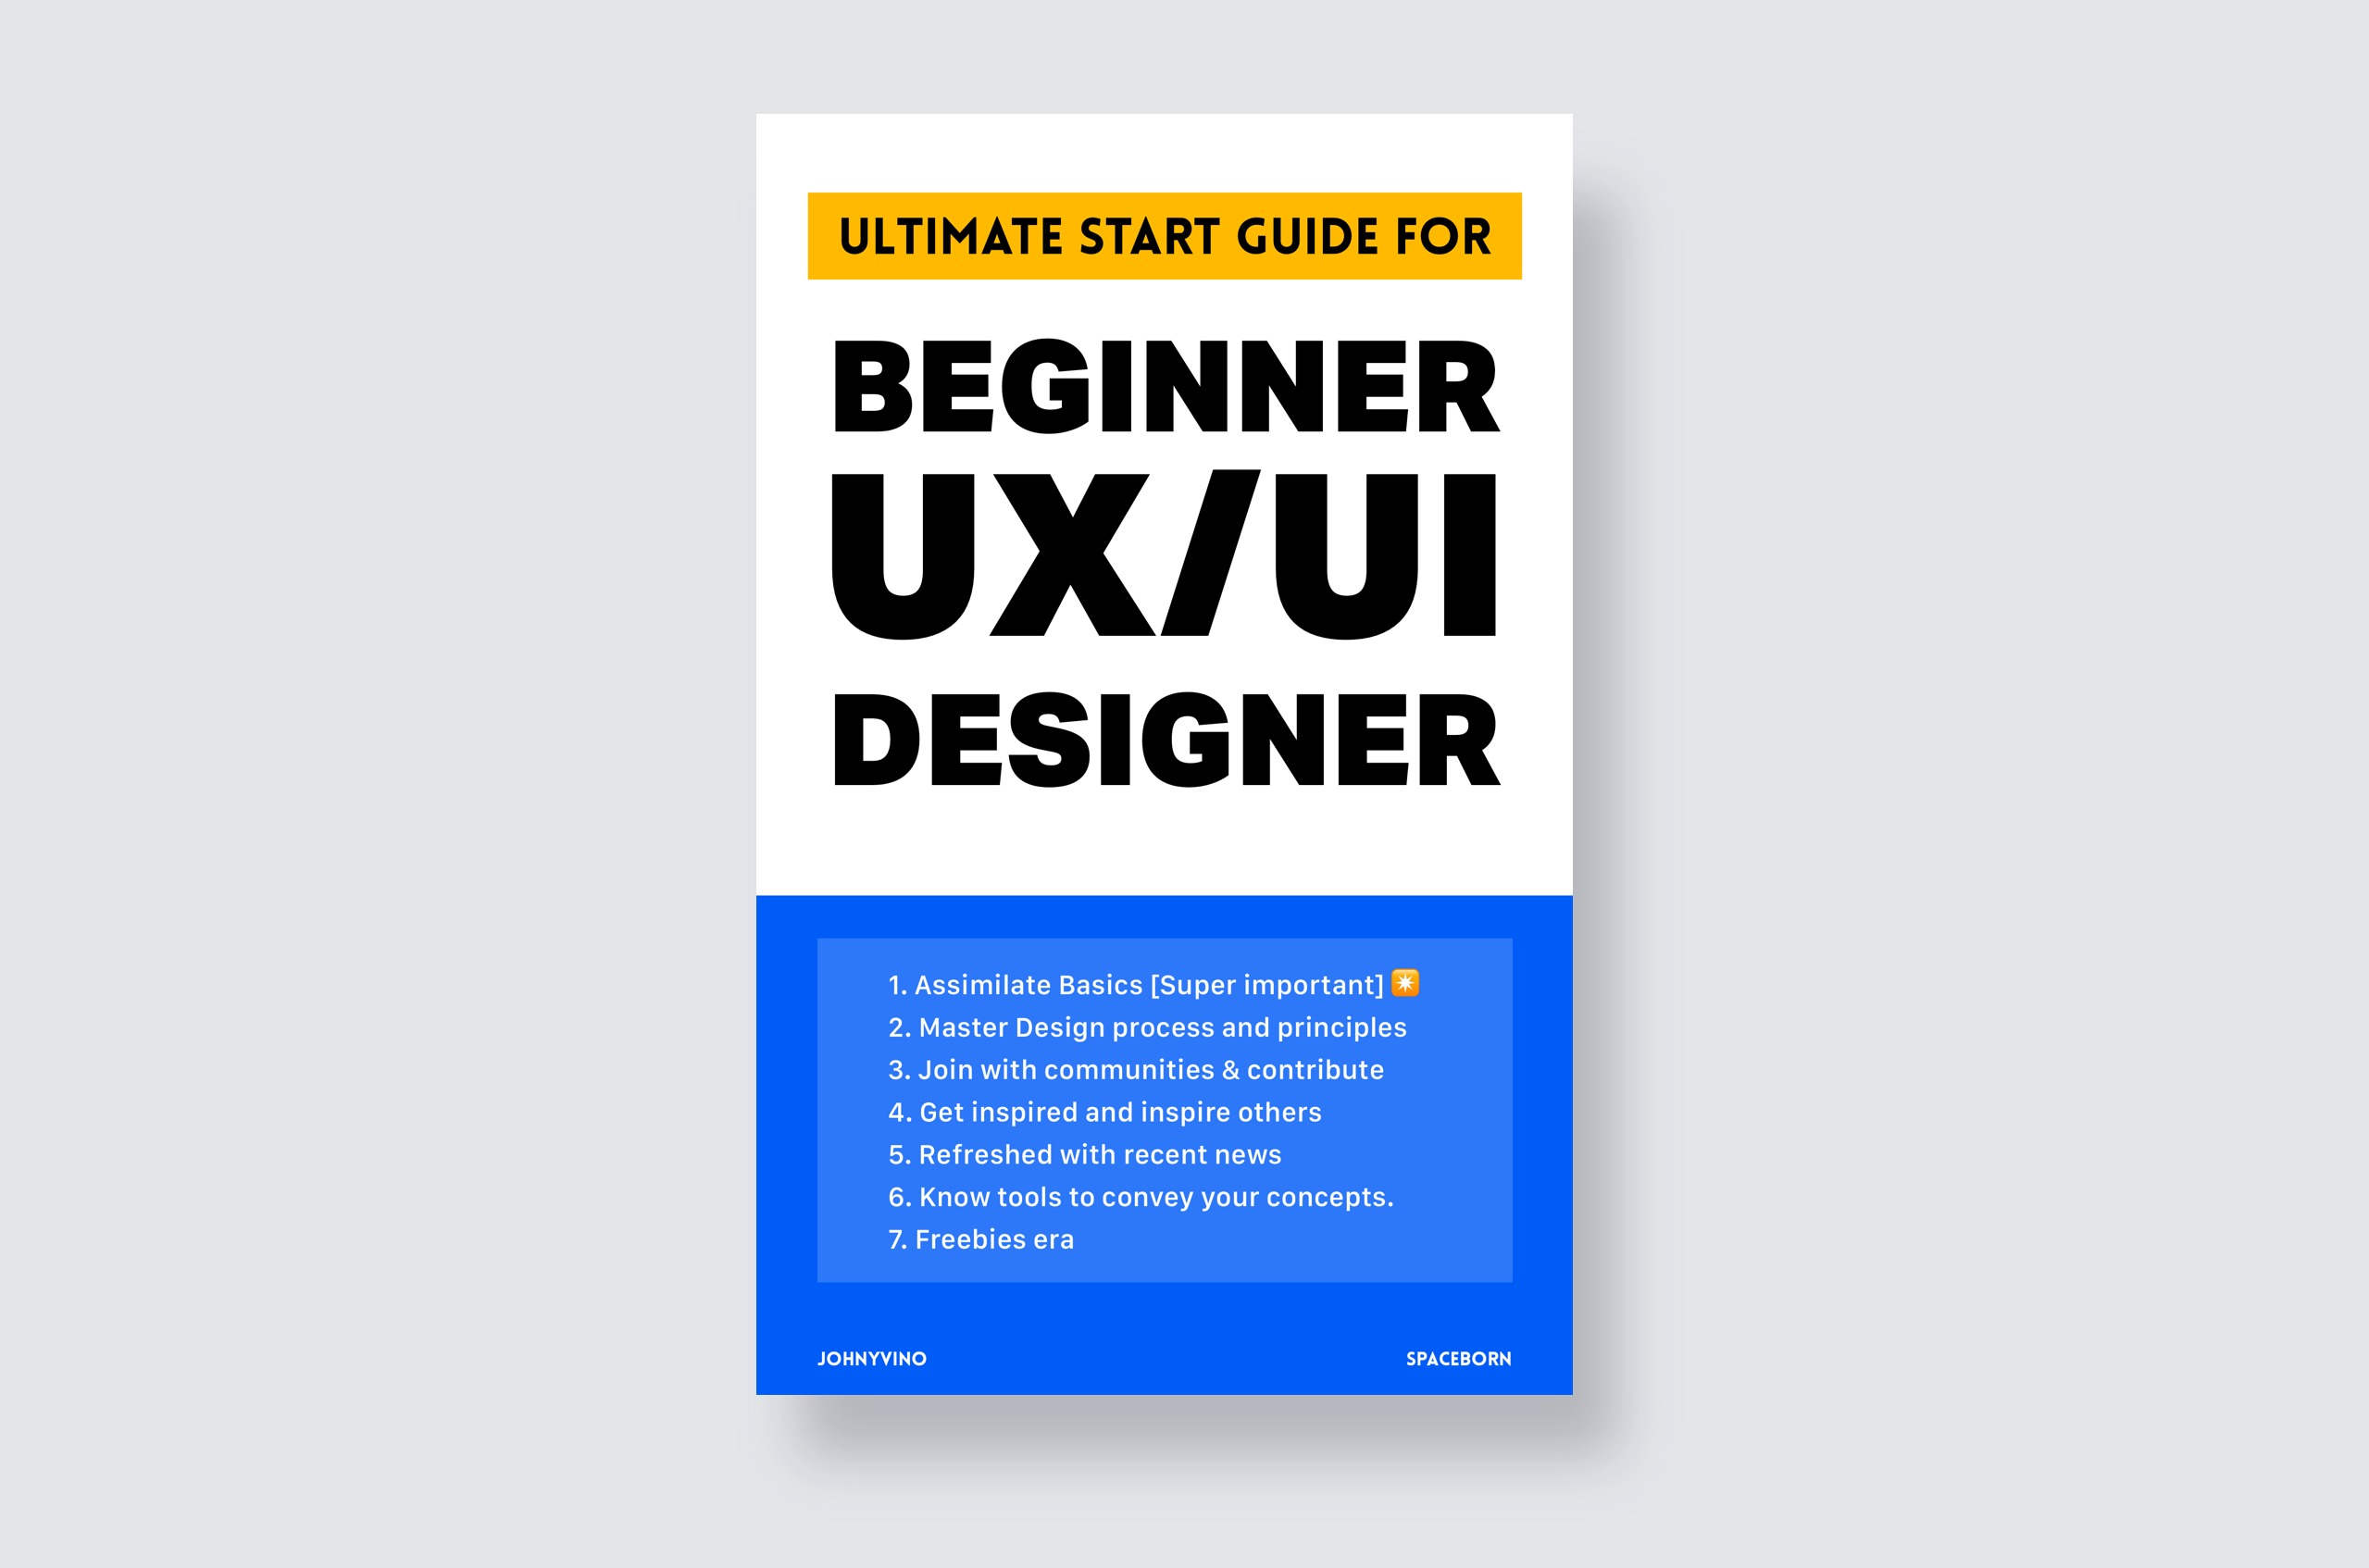 Ultimate Start Guide For Beginner Ux Ui Designers In 2019 By Johny Vino Ux Collective